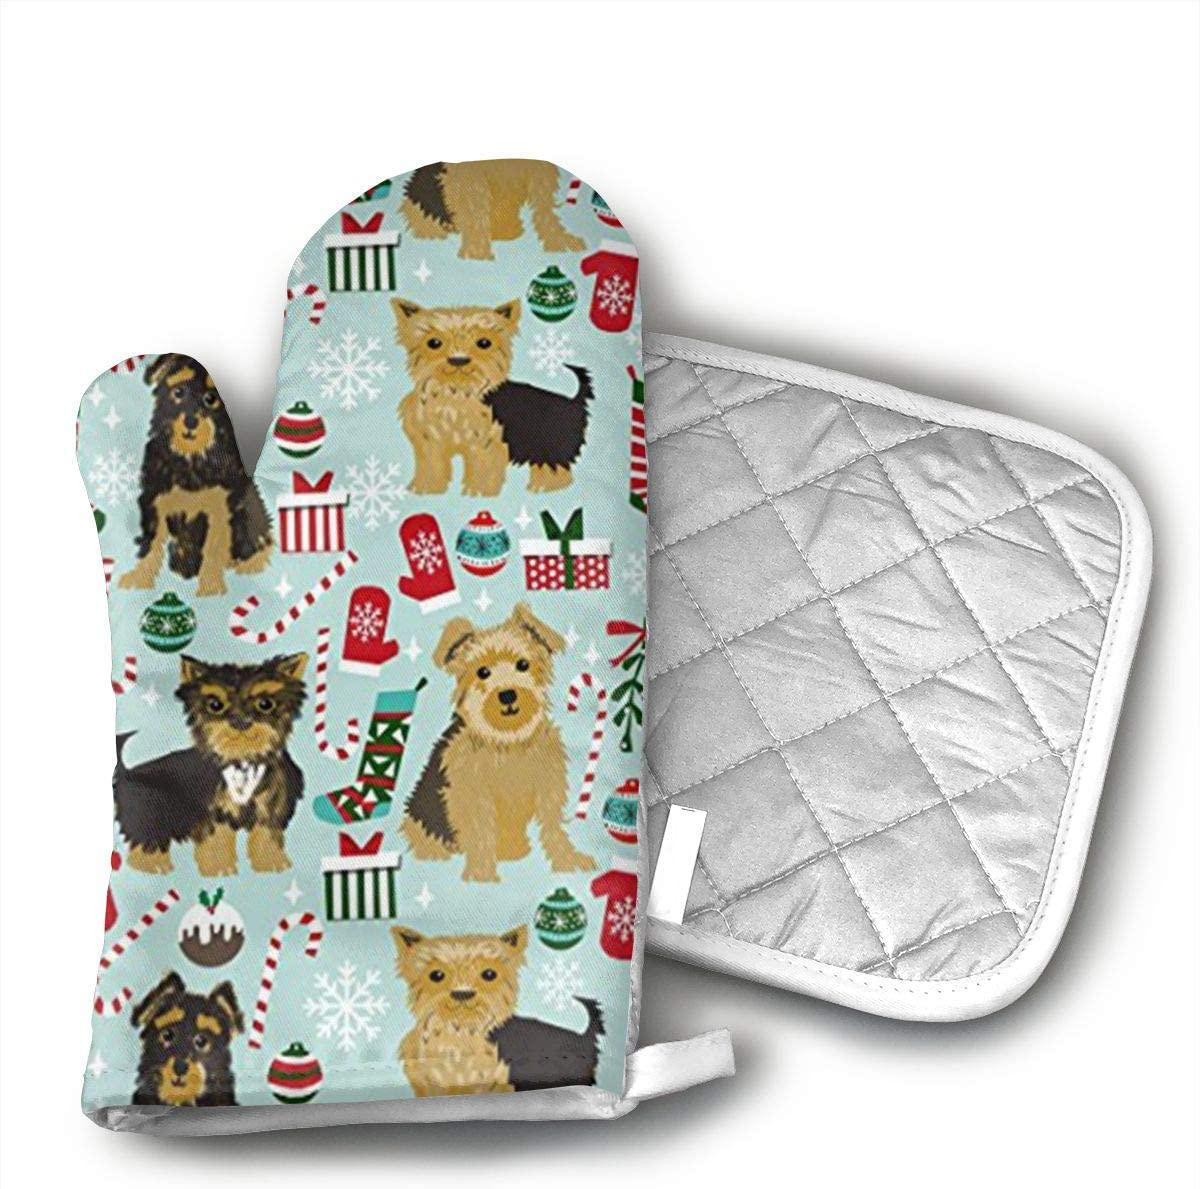 Sjiwqoj8 Cute Yorkie Christmas Kitchen Oven Mitts,Oven Mitts and Pot Holders,Heat Resistant with Quilted Cotton Lining,Cooking,Baking,Grilling,Barbecue